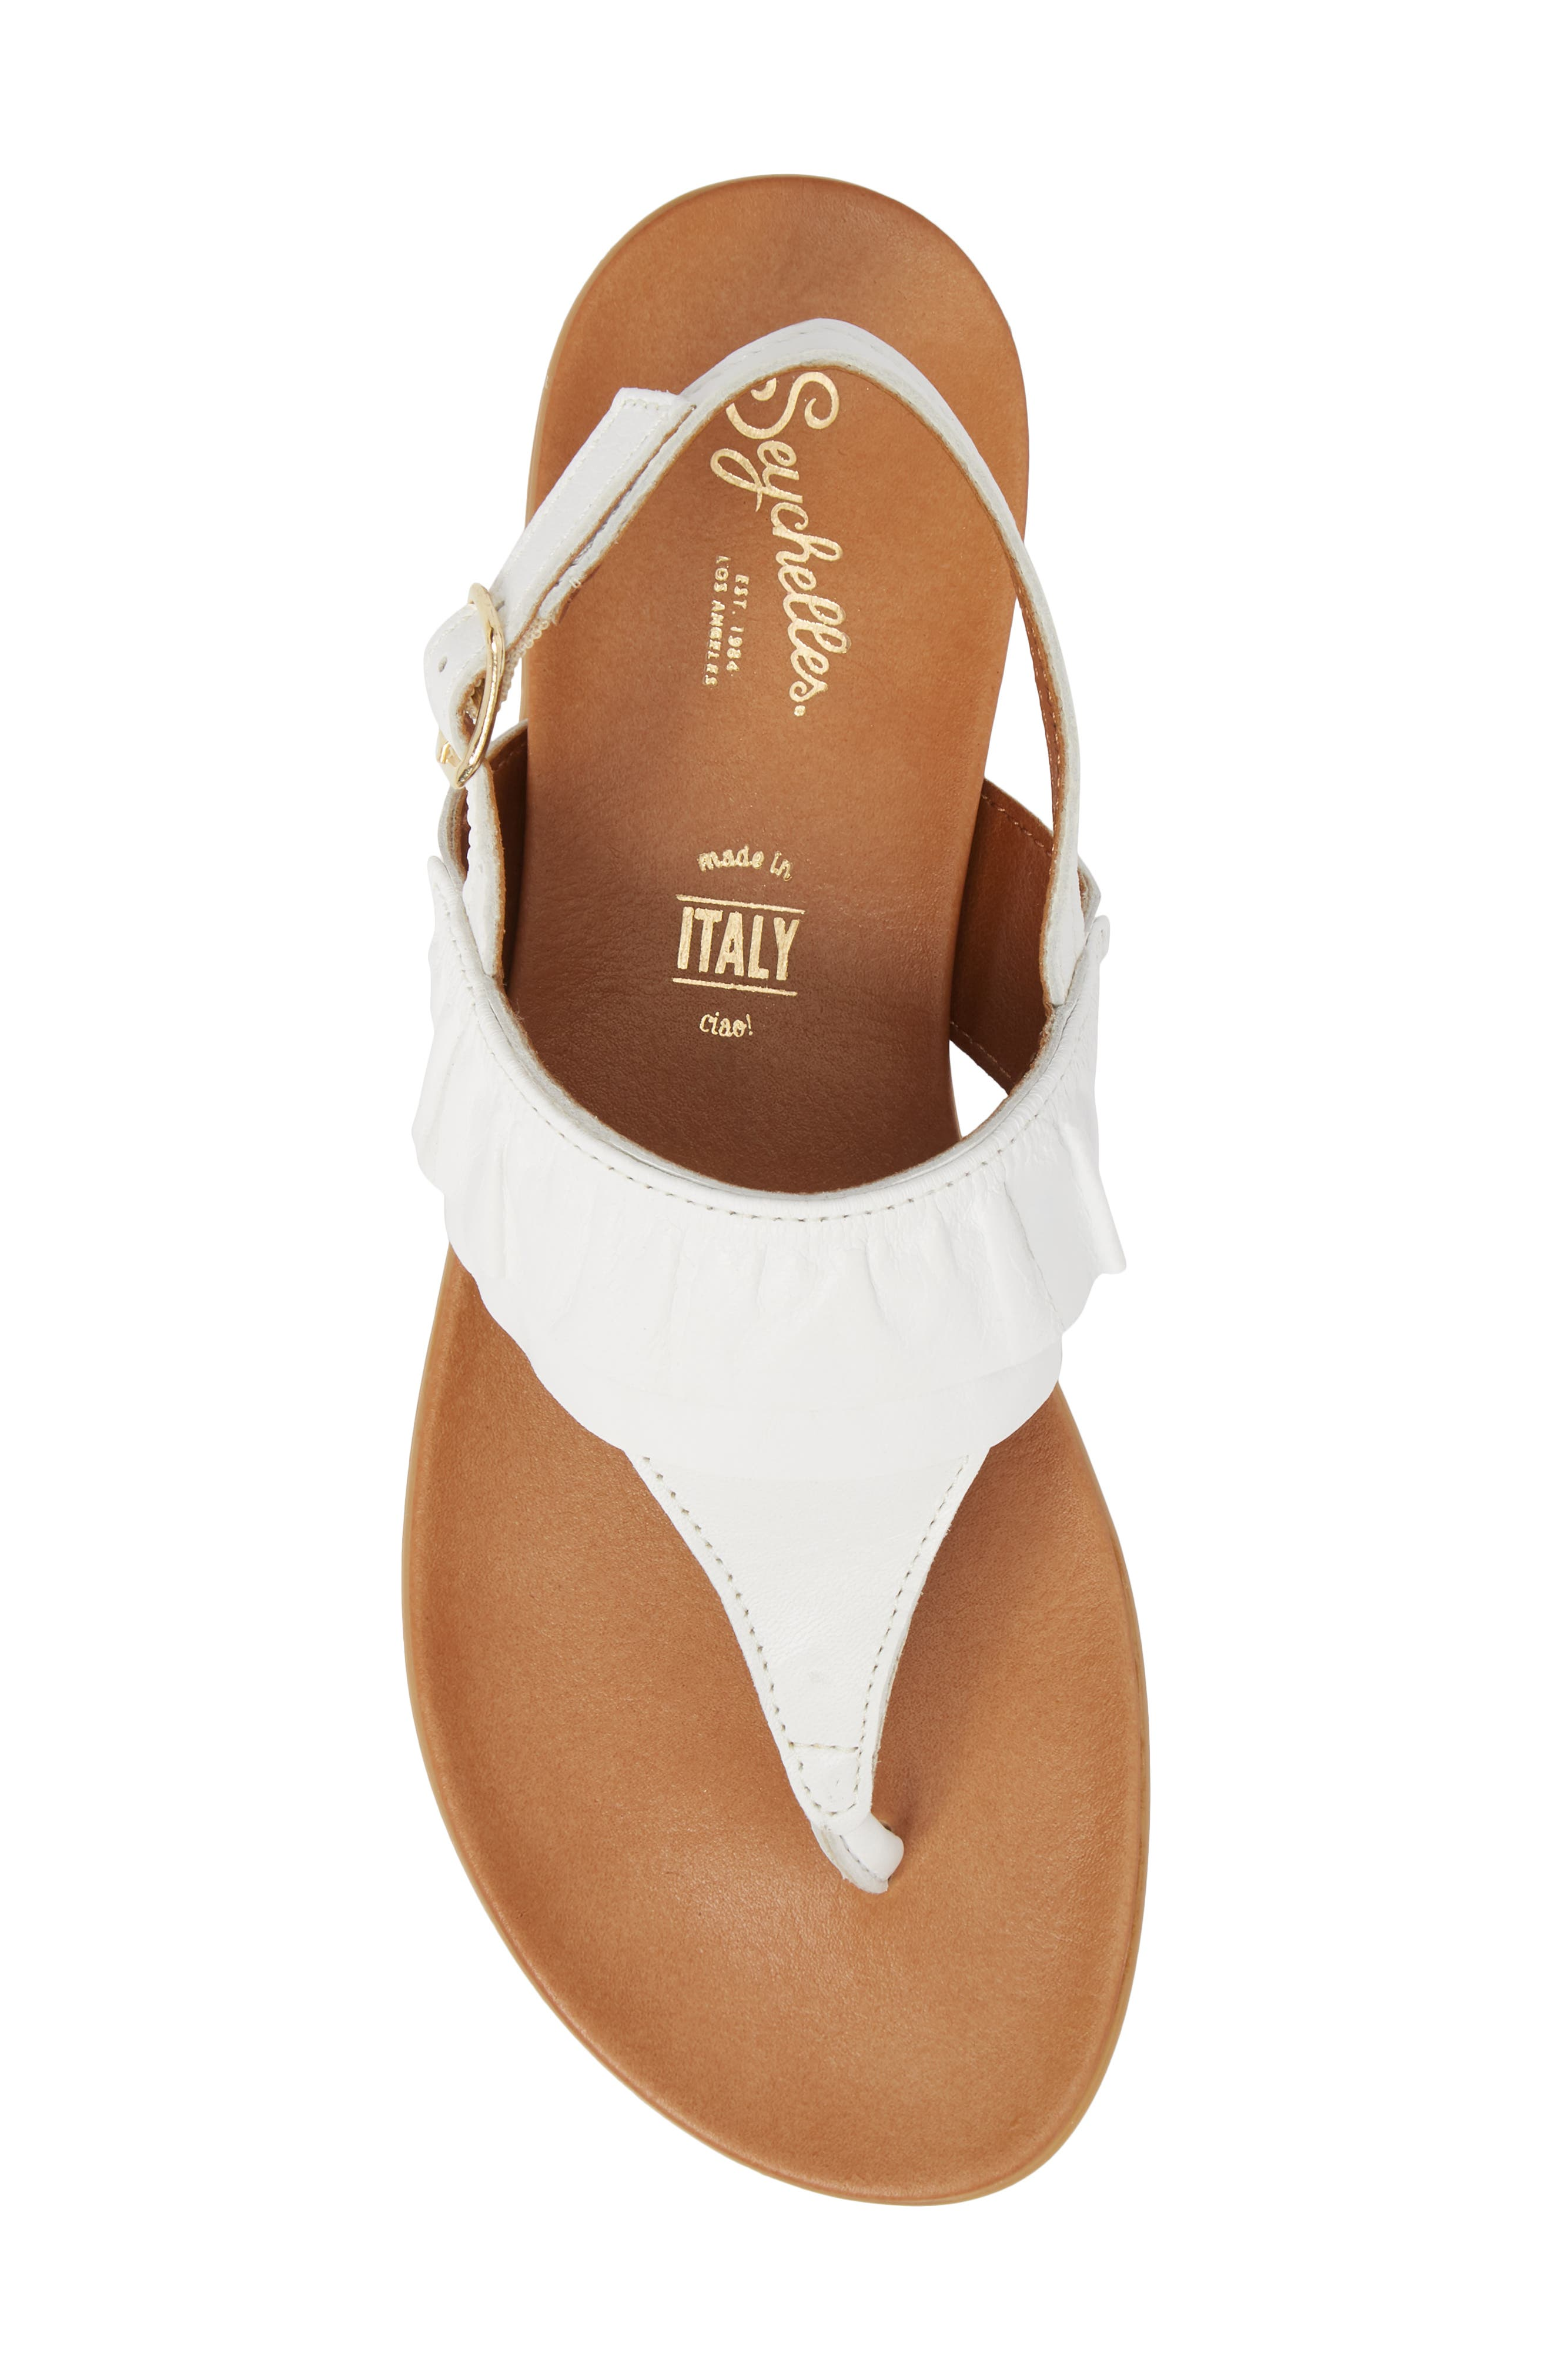 Seclusion Ruffle Sandal,                             Alternate thumbnail 5, color,                             White Leather